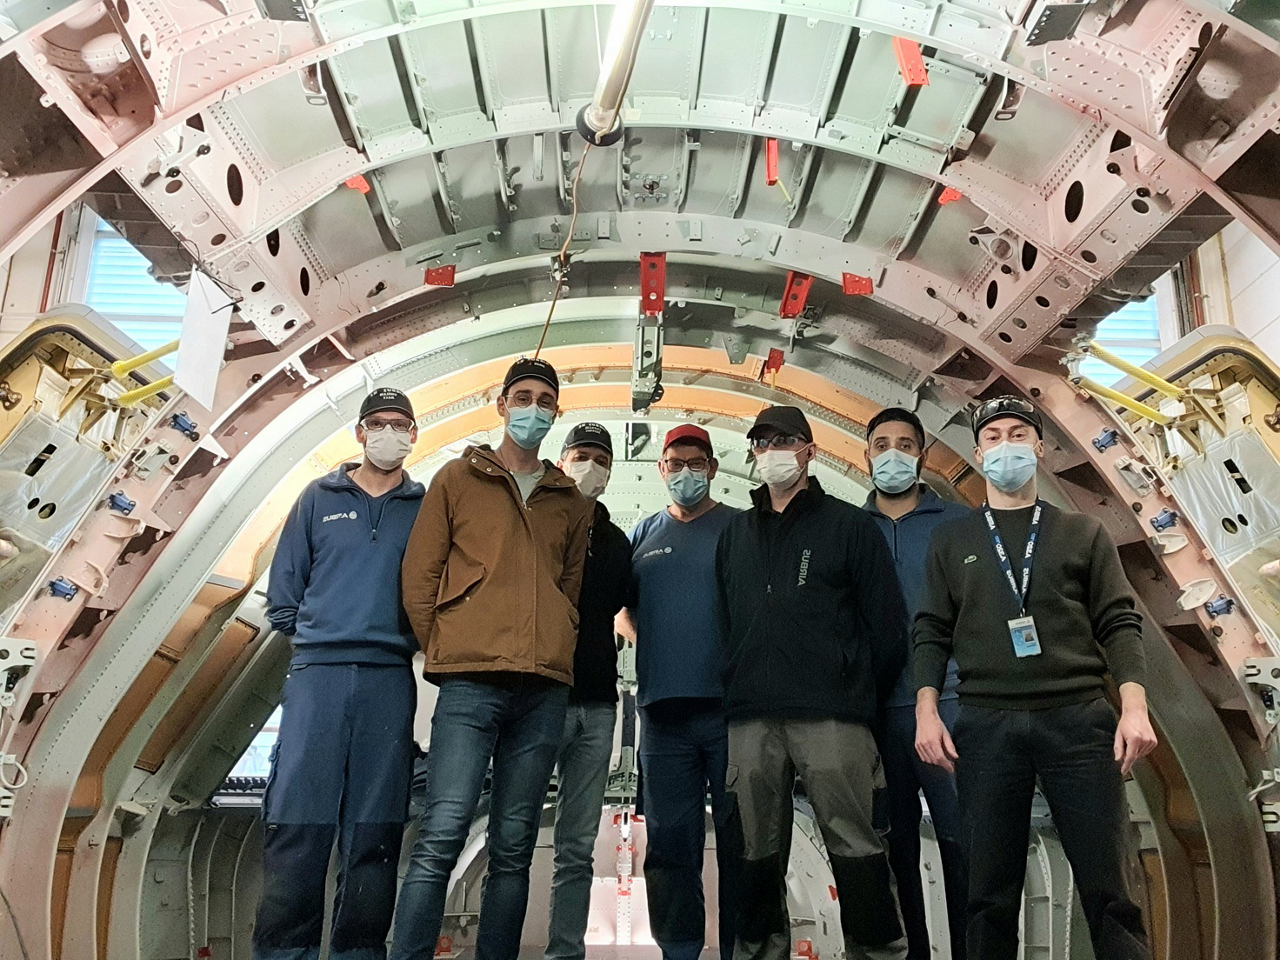 Team members earlier this year in St Nazaire installed the Physical Mock-Up (PMU) to represent the Nose & Forward (NFF) section of the A321XLR.